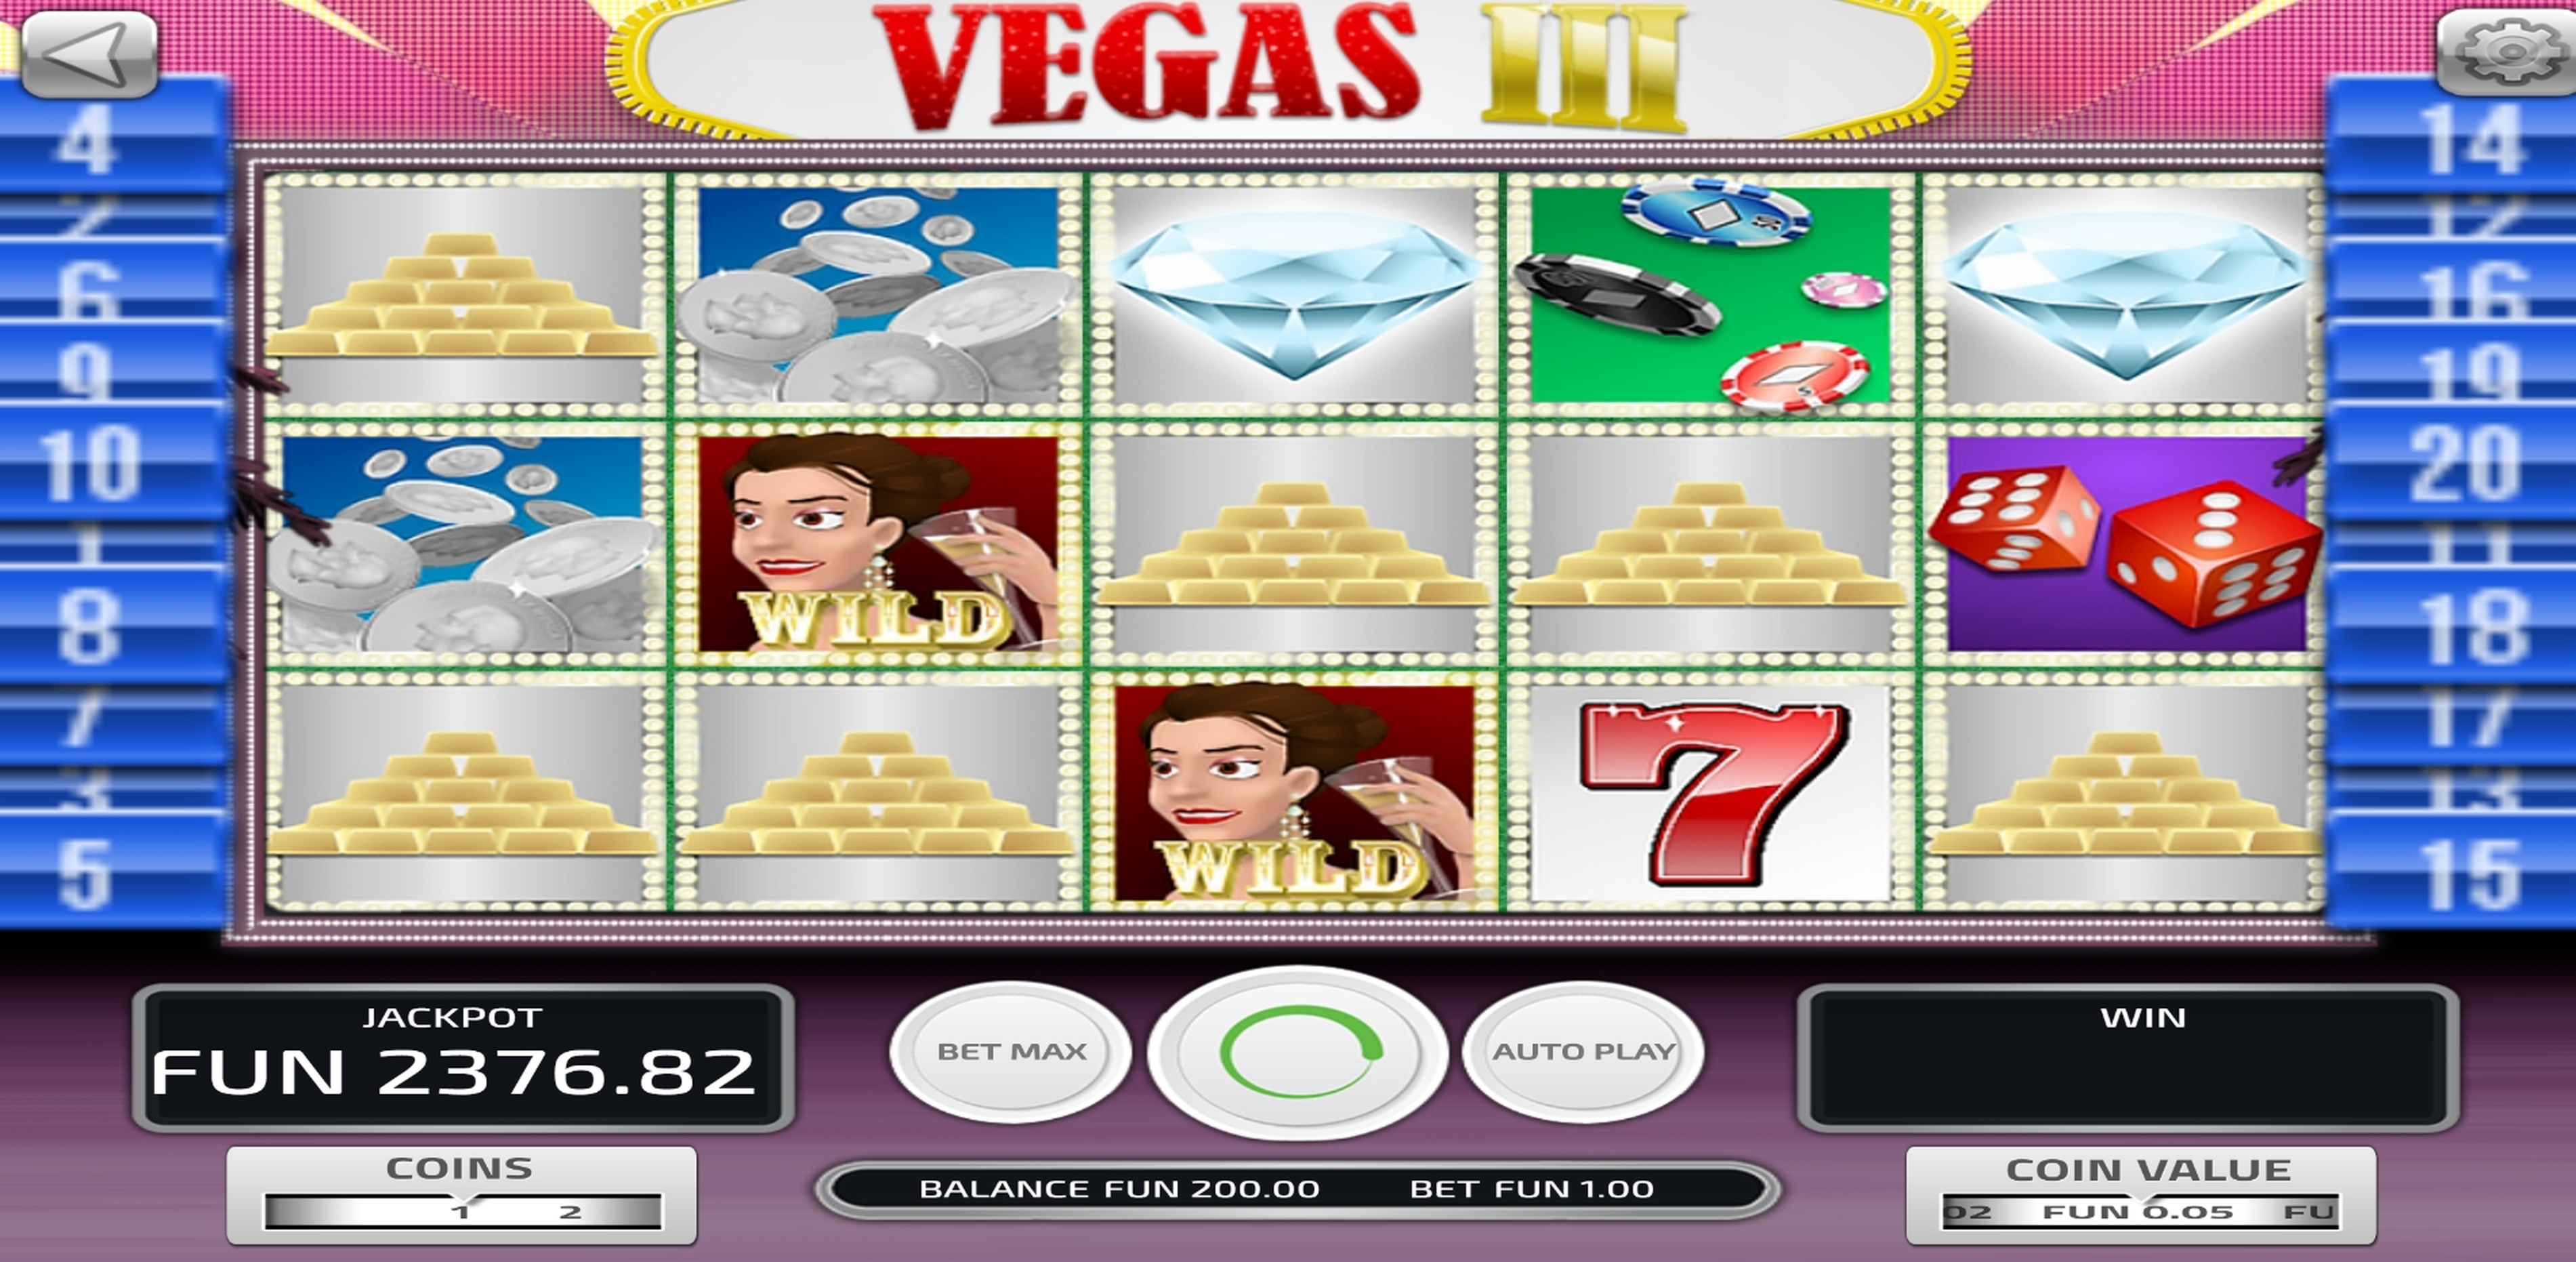 Reels in Vegas III Slot Game by Concept Gaming